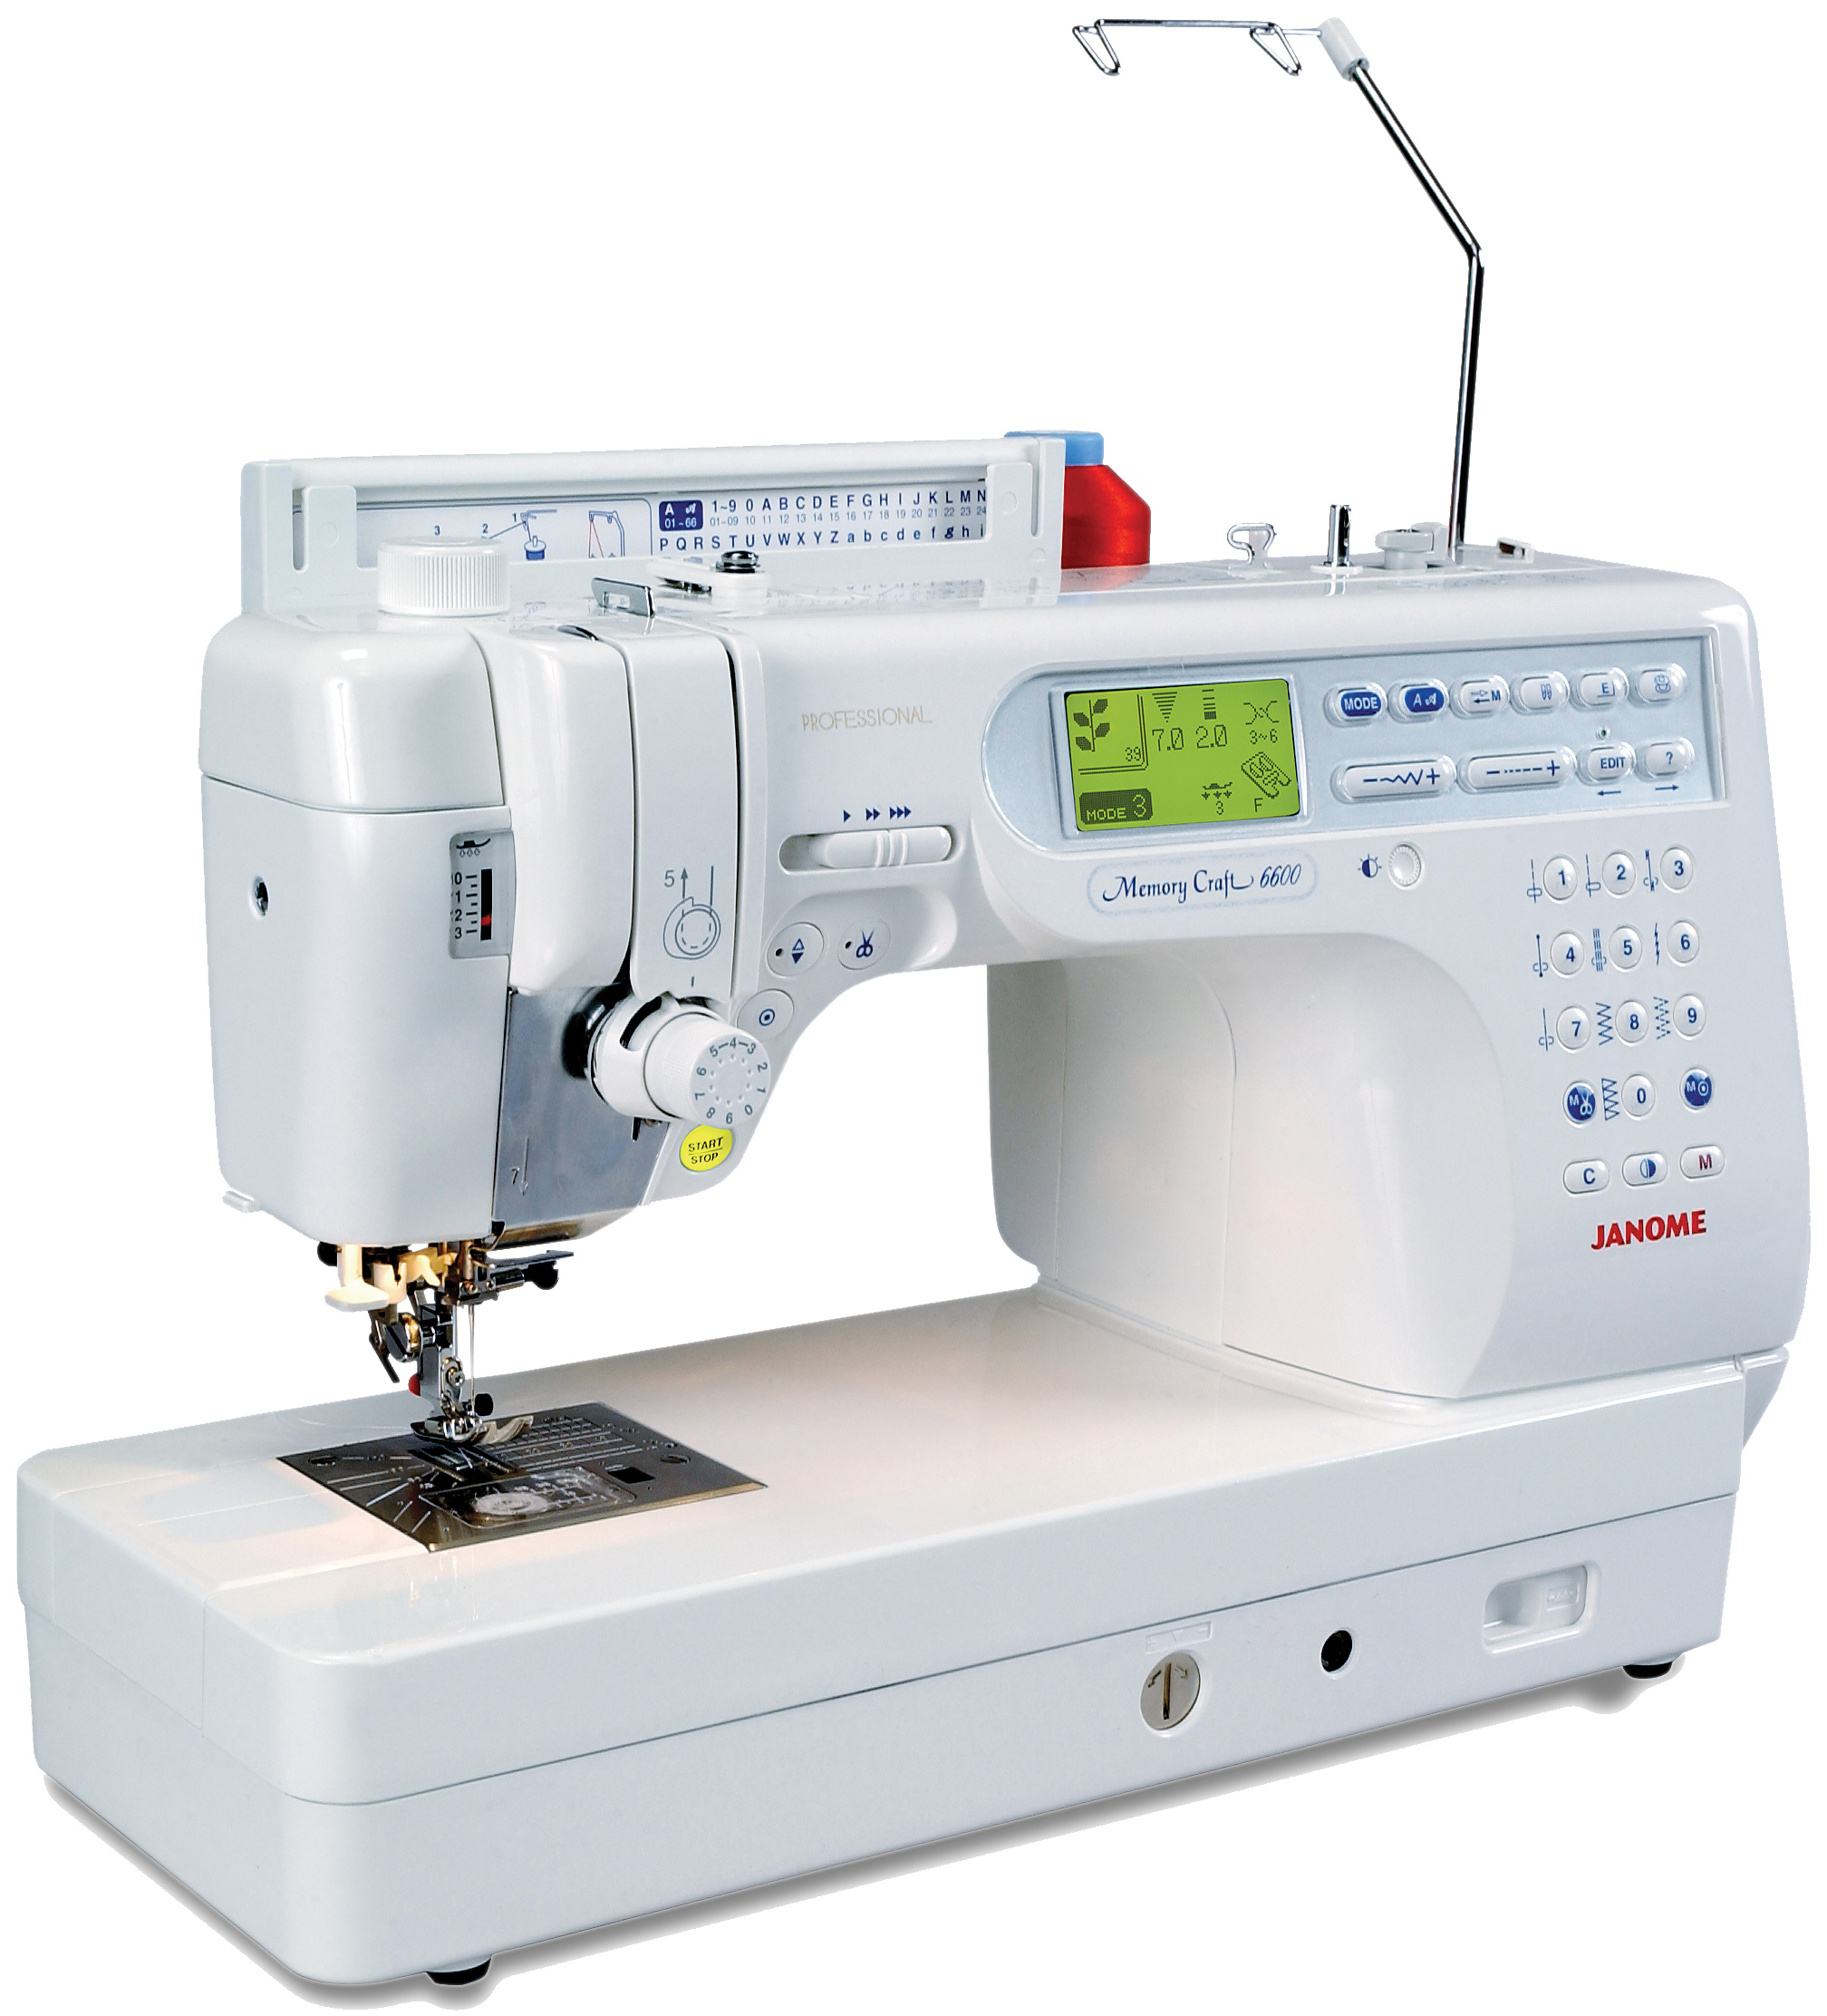 Janome Memory Craft 6600 Professional Sewing & Quilting Machine